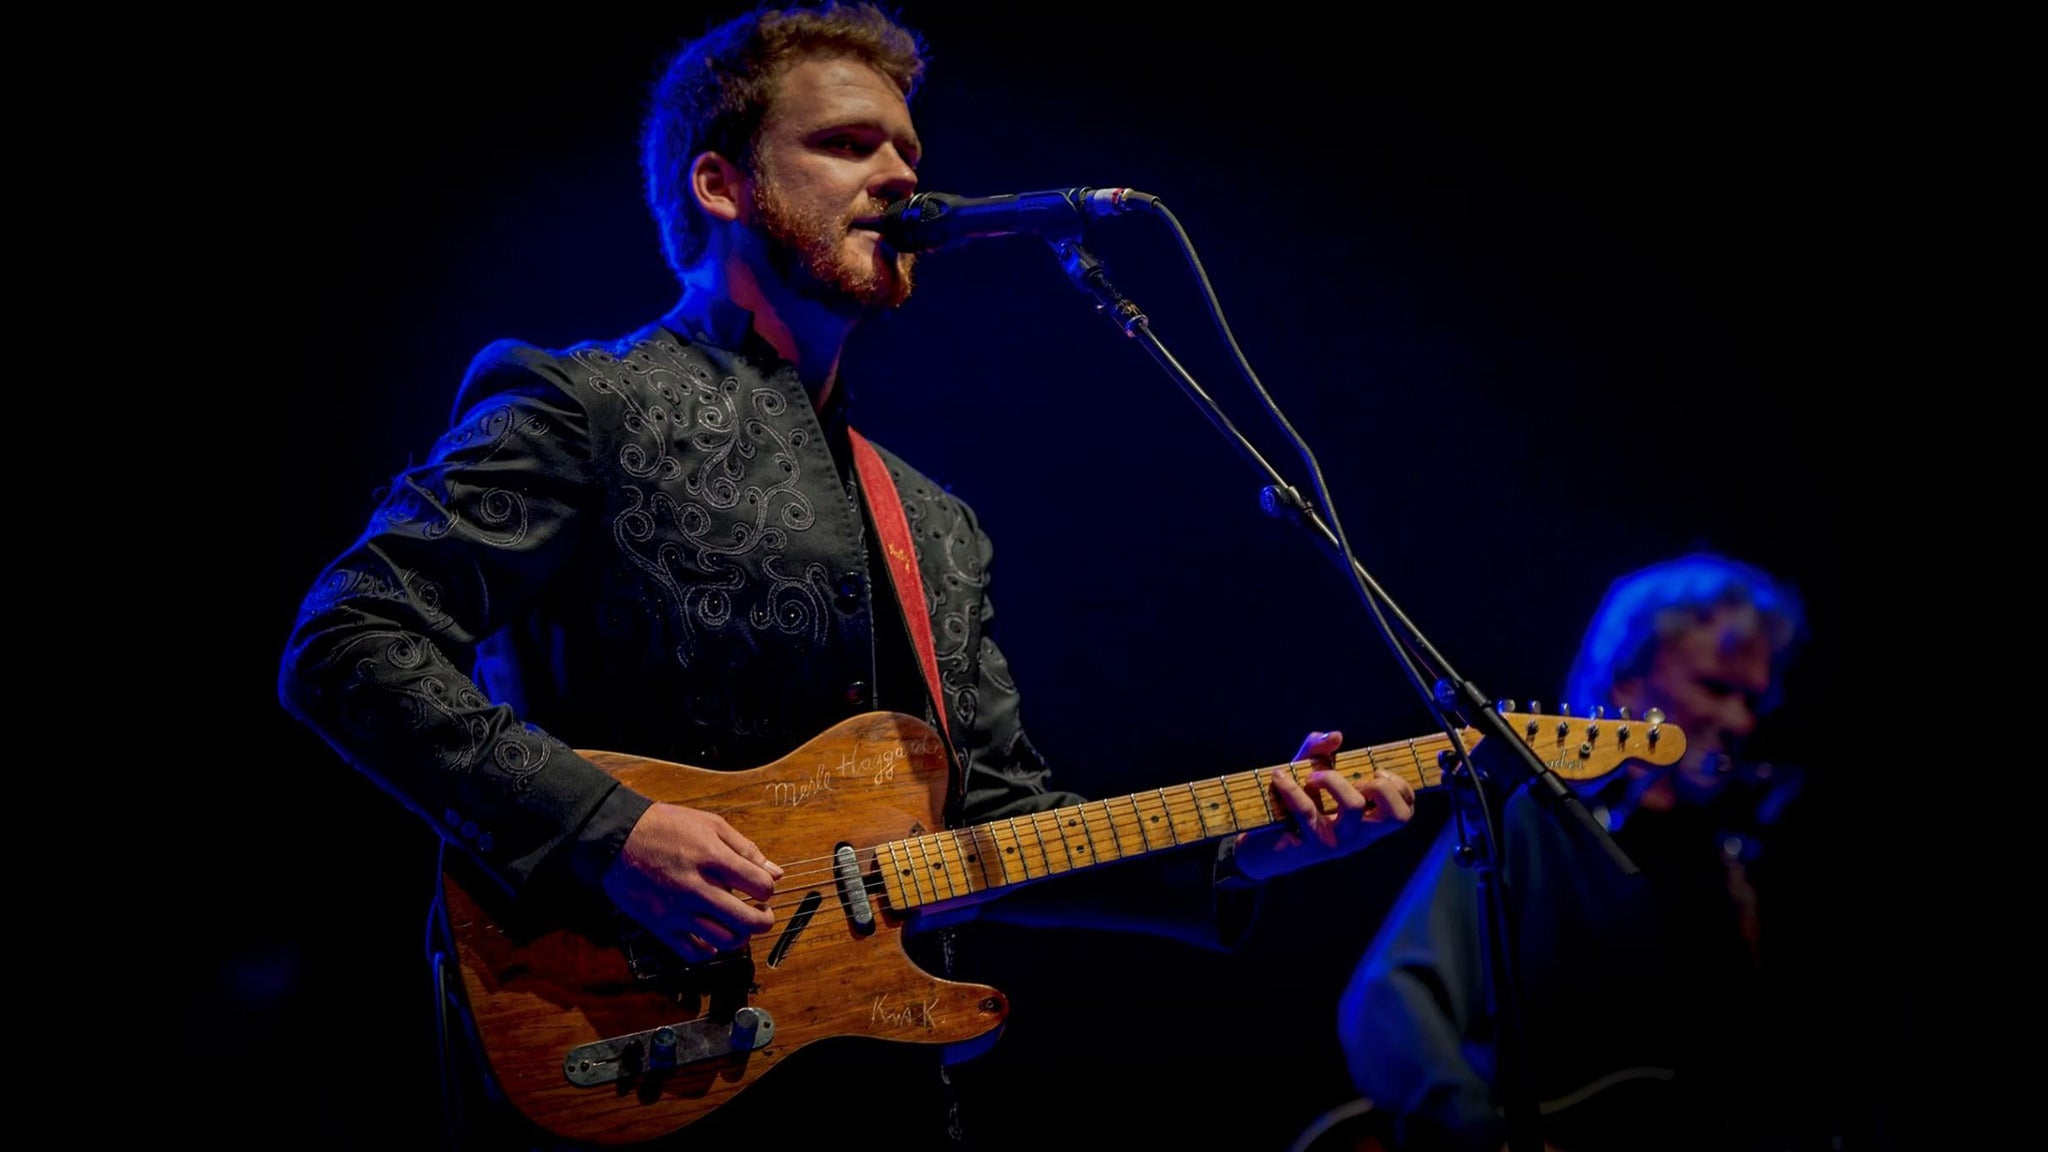 Ben Haggard at Ponte Vedra Concert Hall